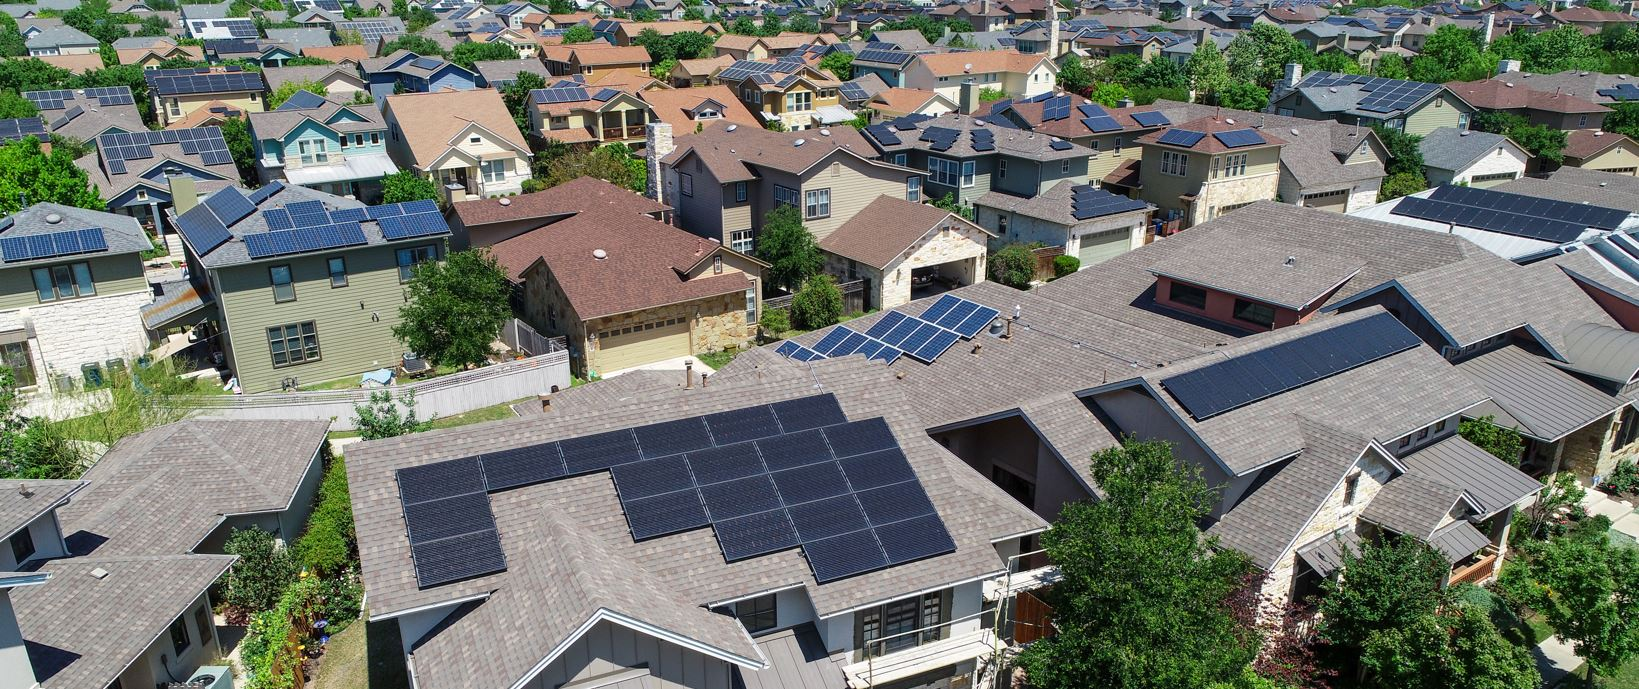 a suburban area featuring homes with solar panels on their roofs